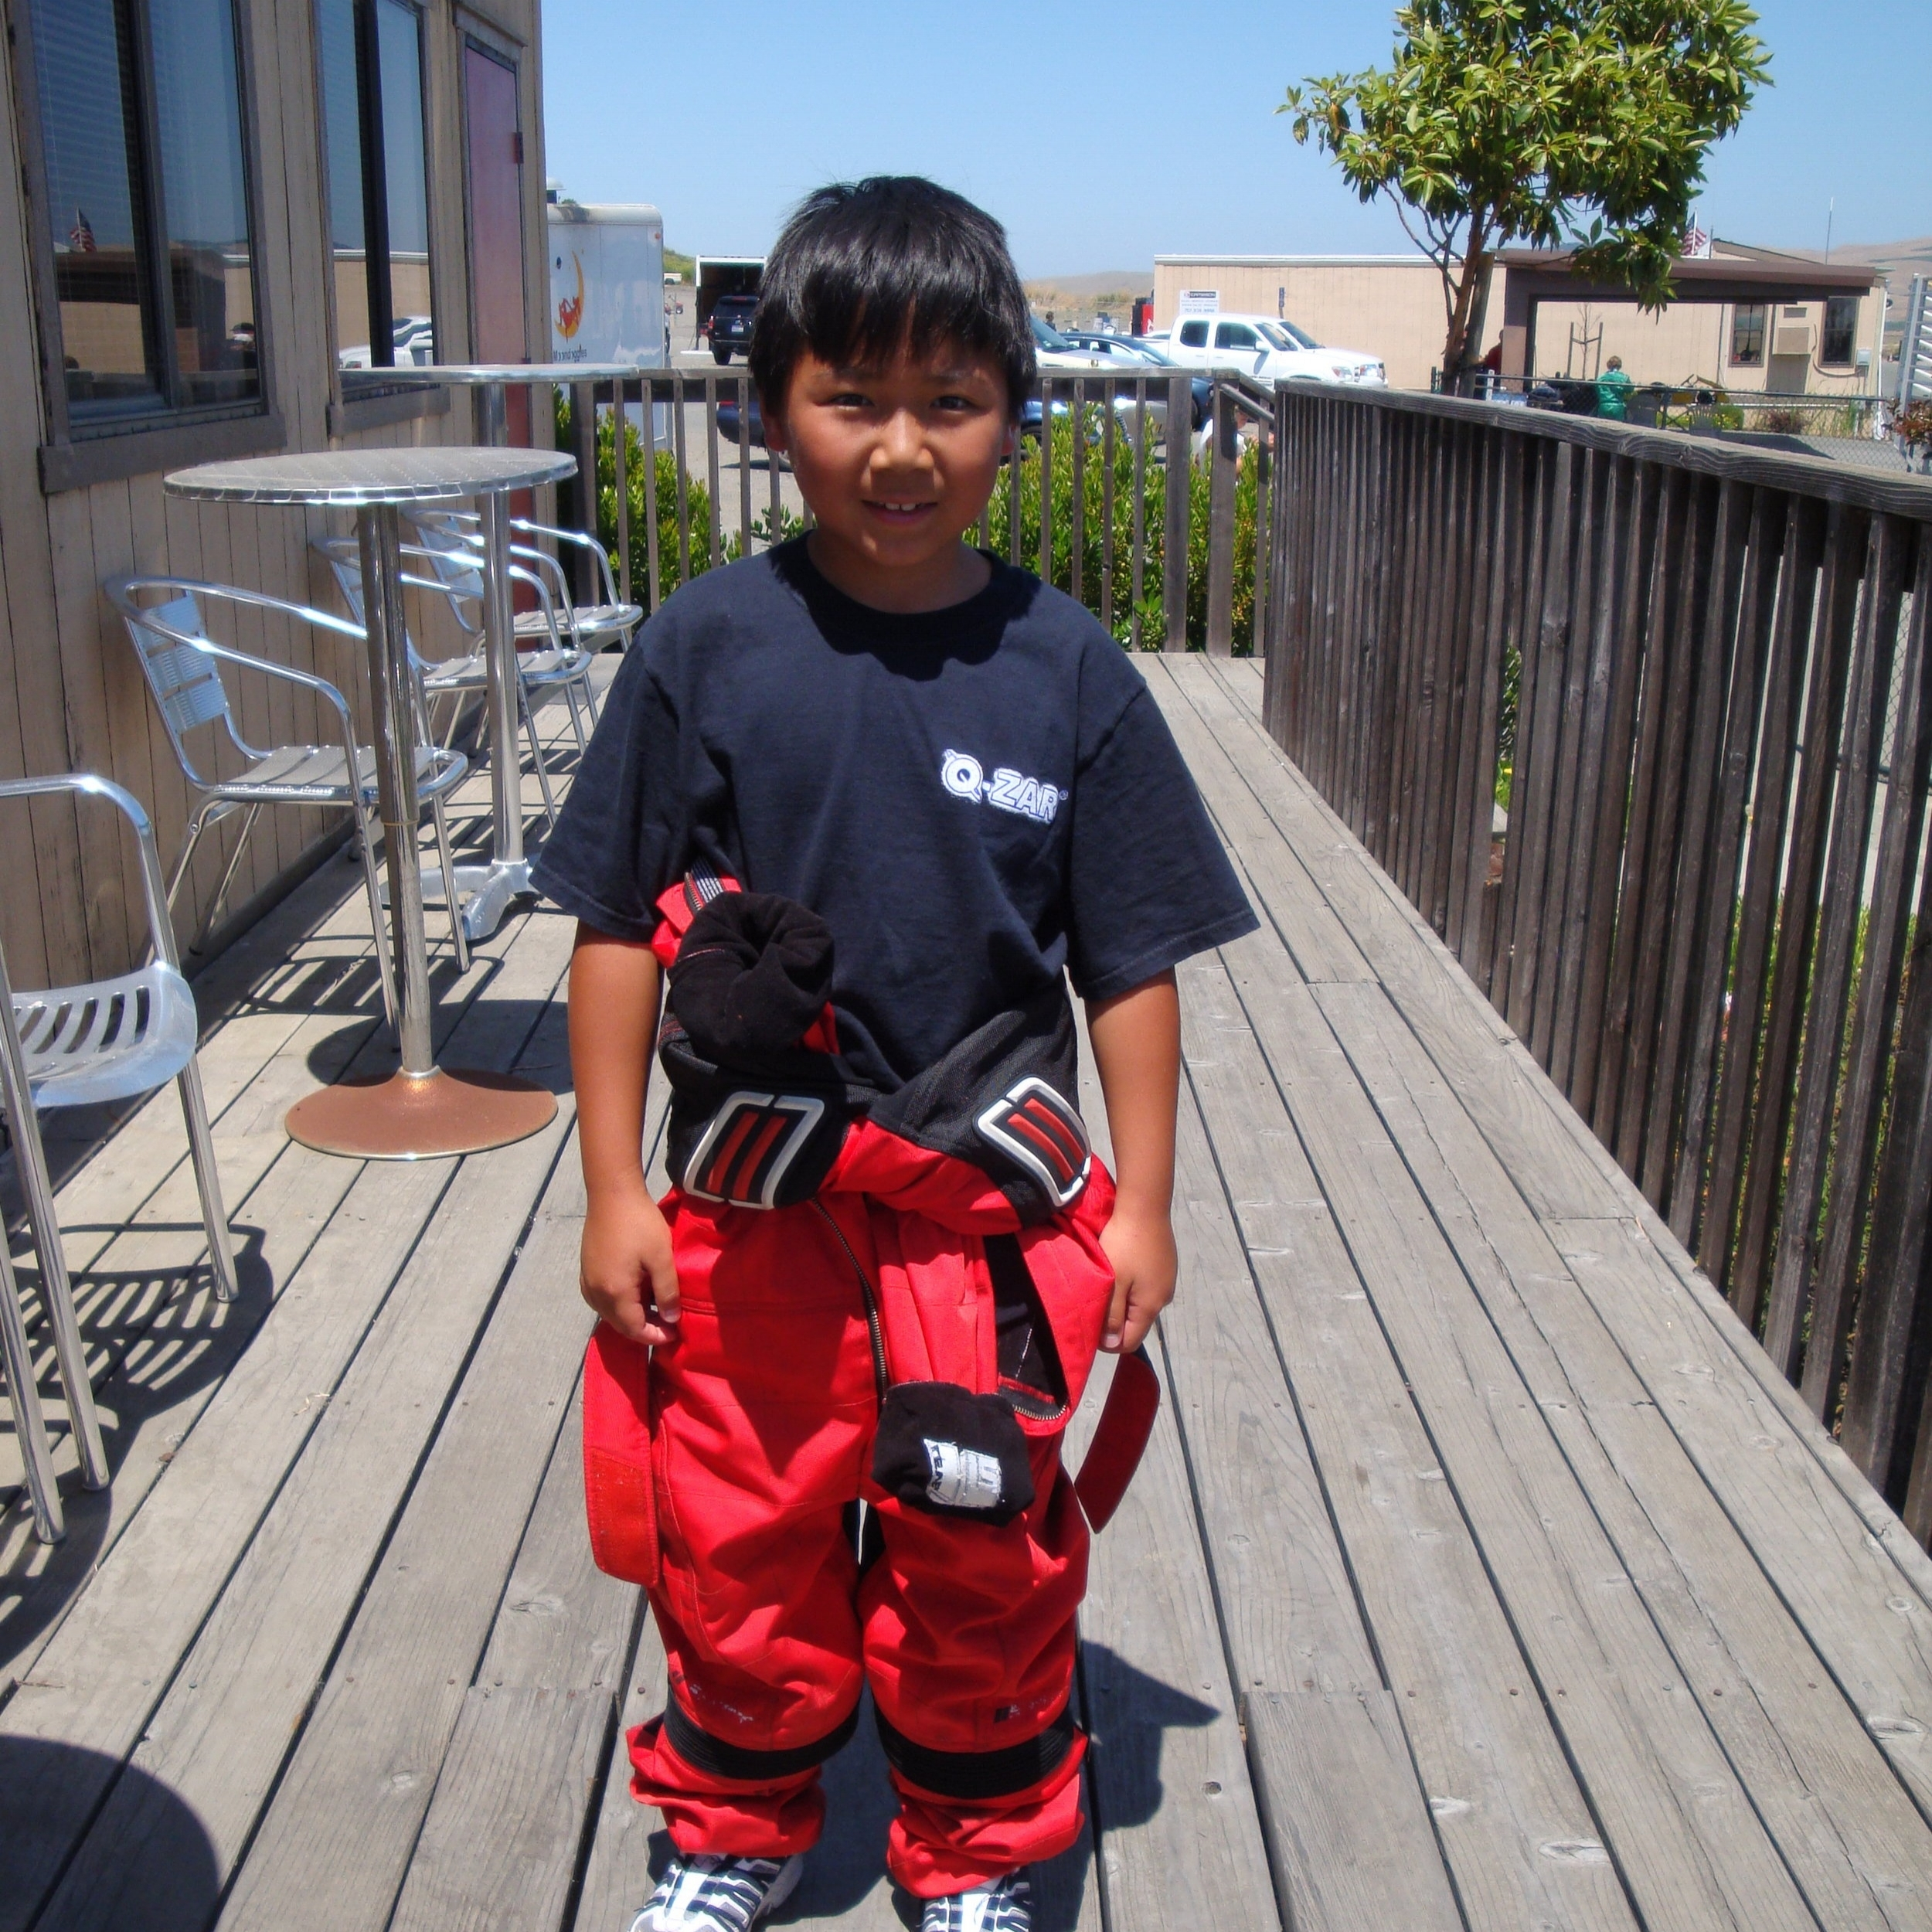 Ready for kart class, 8 years old